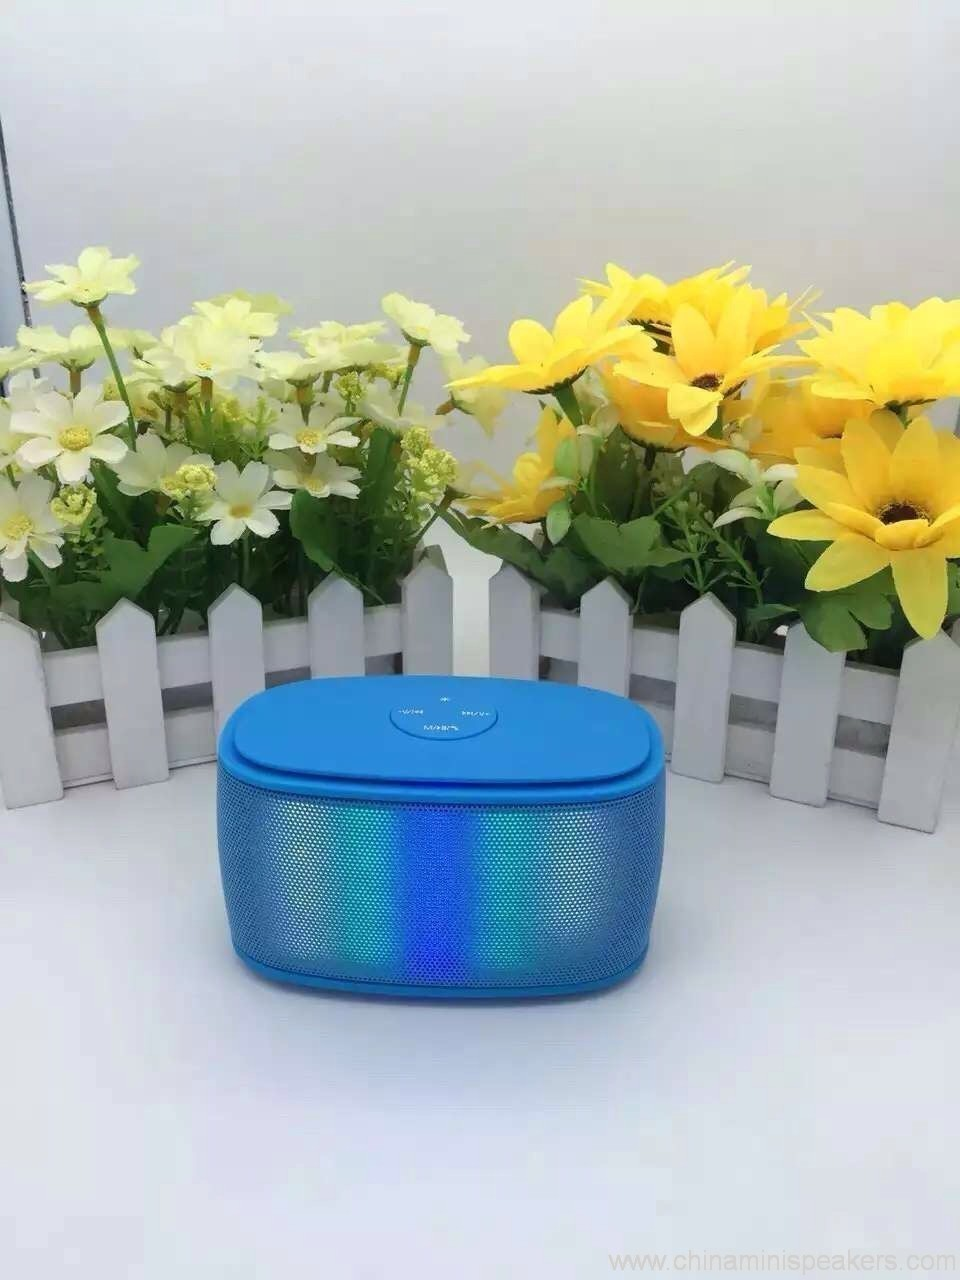 Colorfull mini brick bluetooth speaker with magic LED lights 4